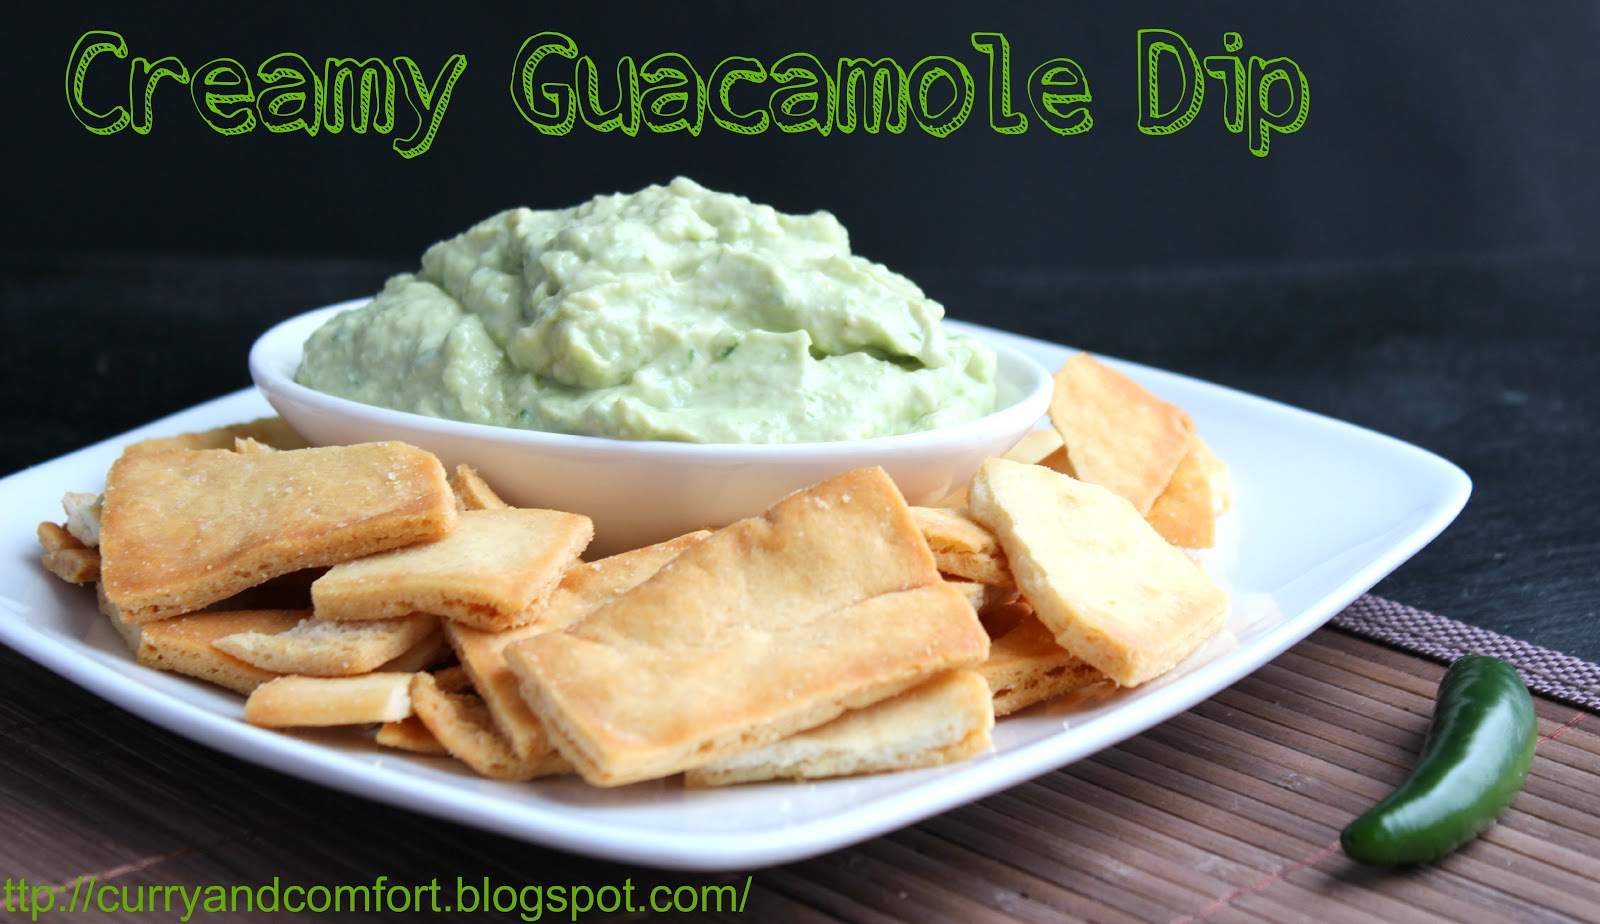 Curry and Comfort: Spicy and Creamy Guacamole Dip